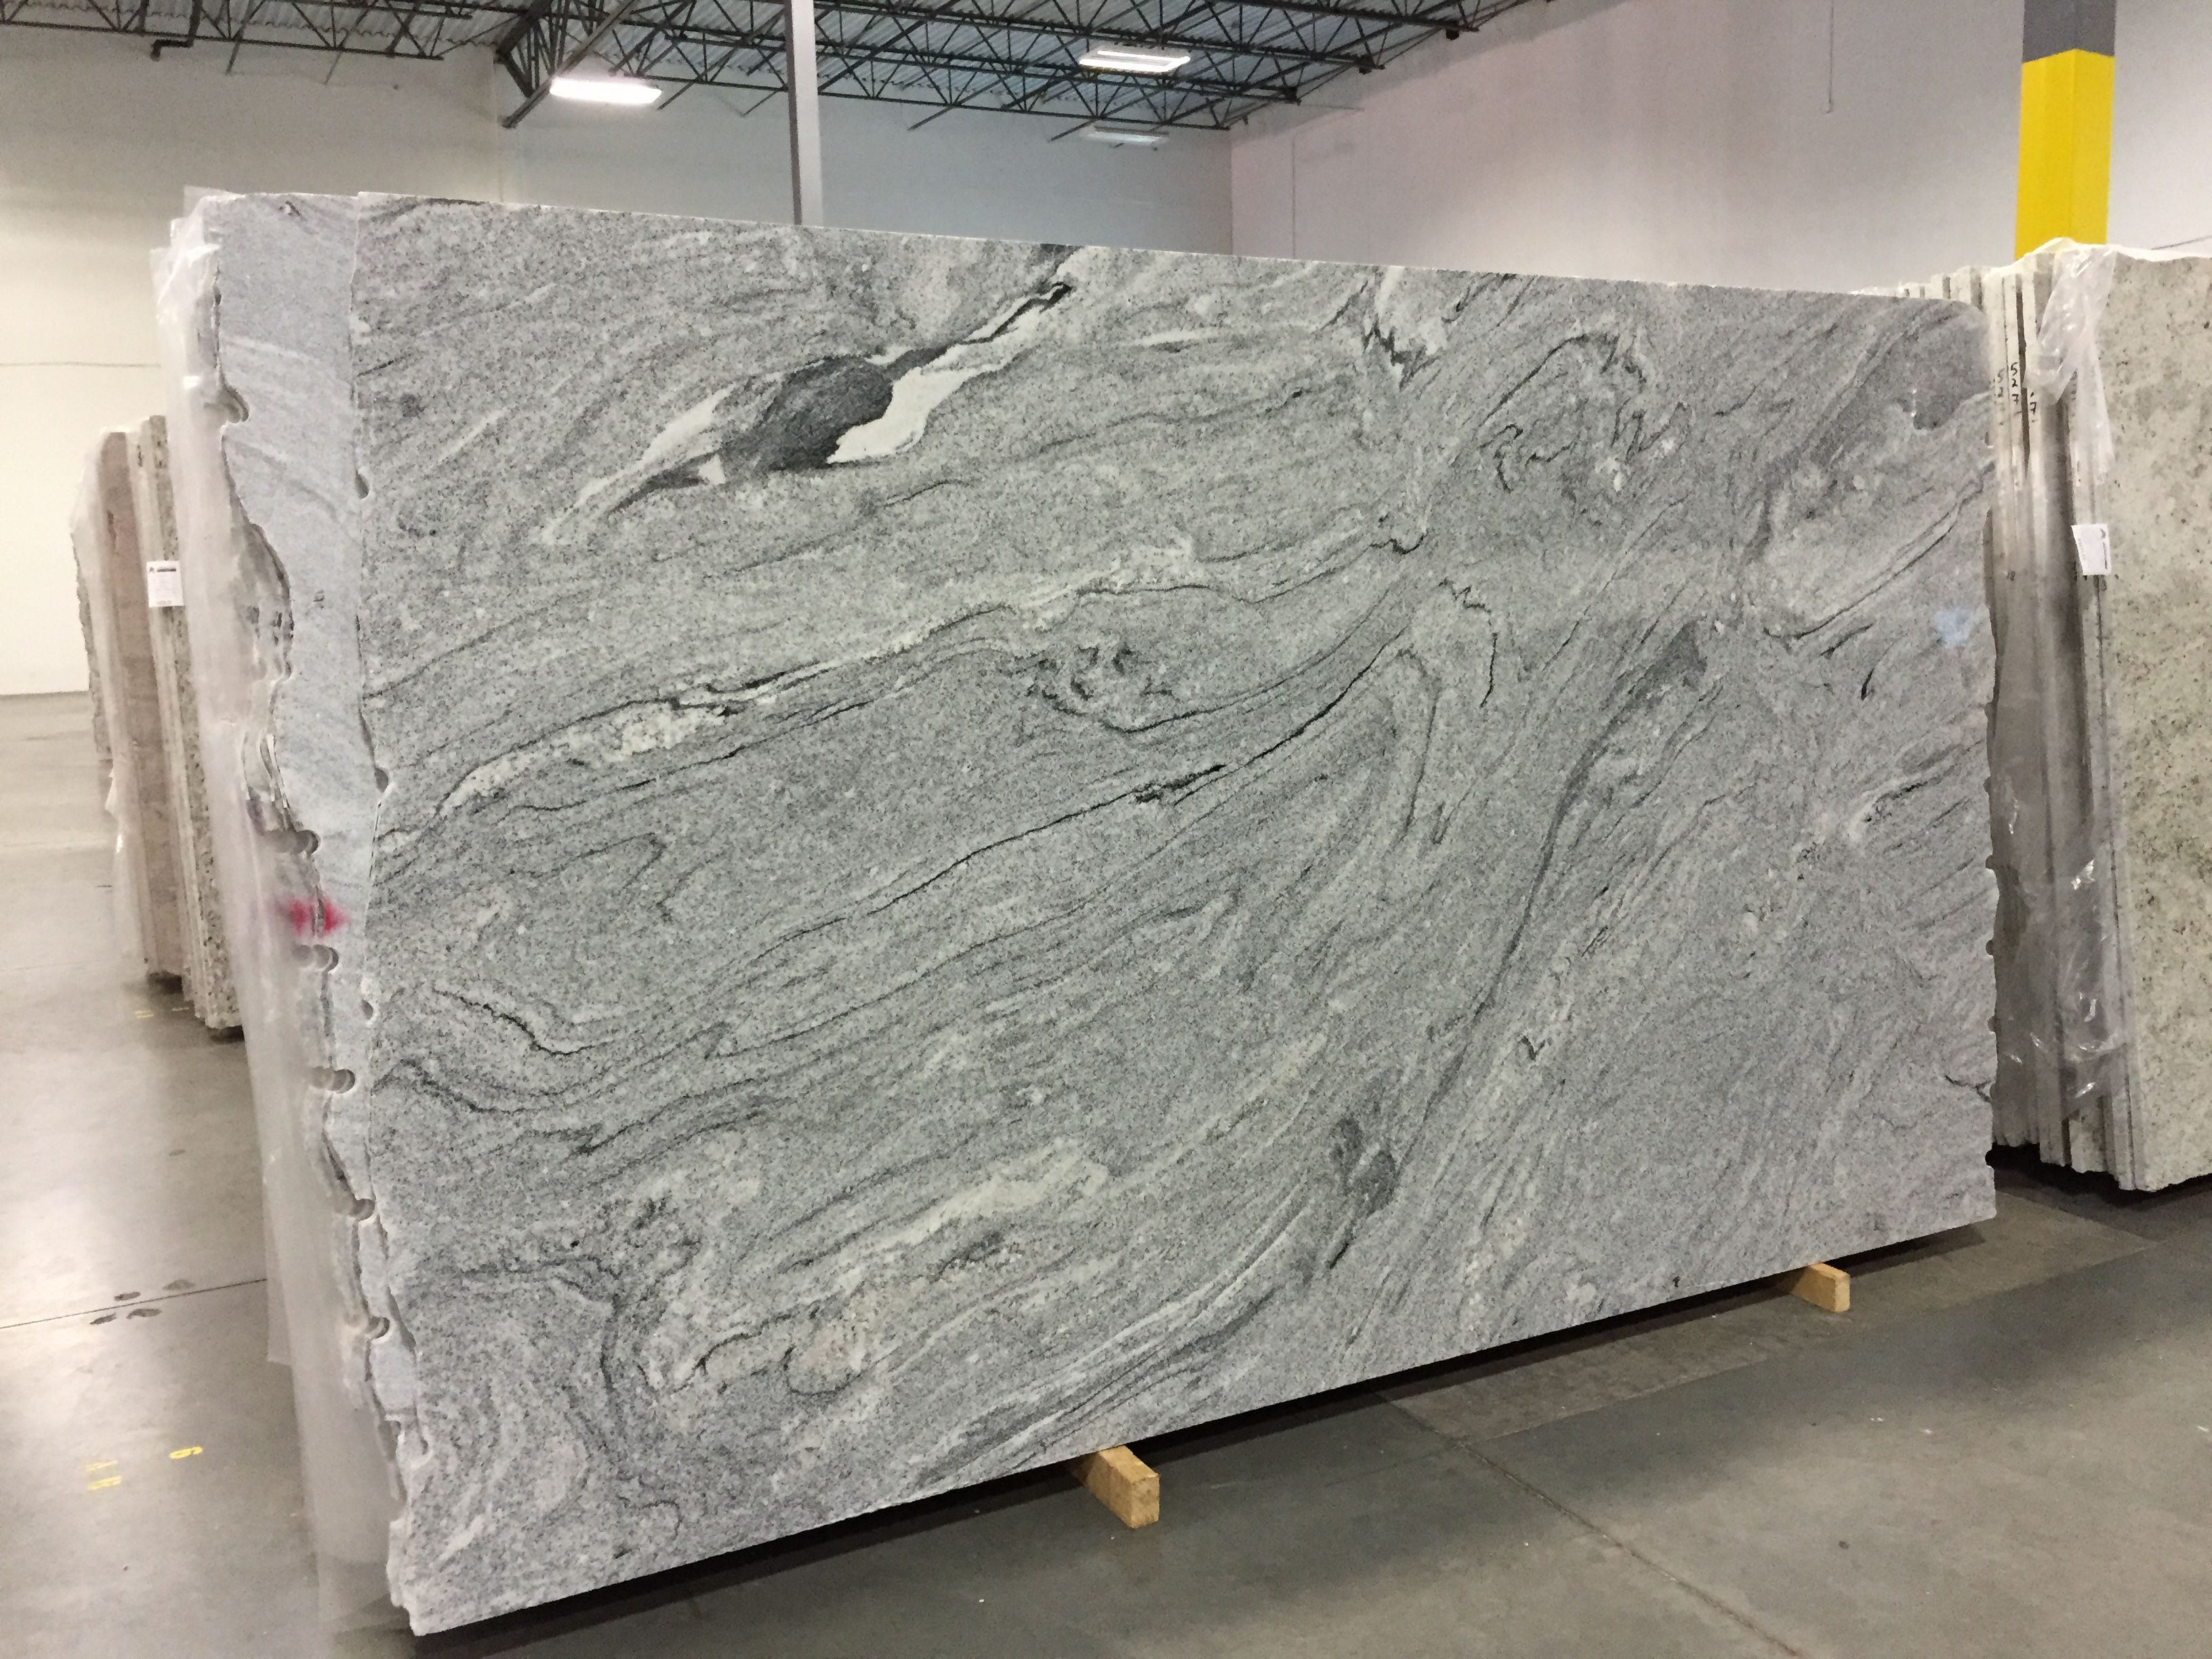 Our Viscont White Granite Slabs Made In Italy More Pictures To Follow Will Have Ebony Wood Floors An White Granite Slabs White Granite White Granite Kitchen